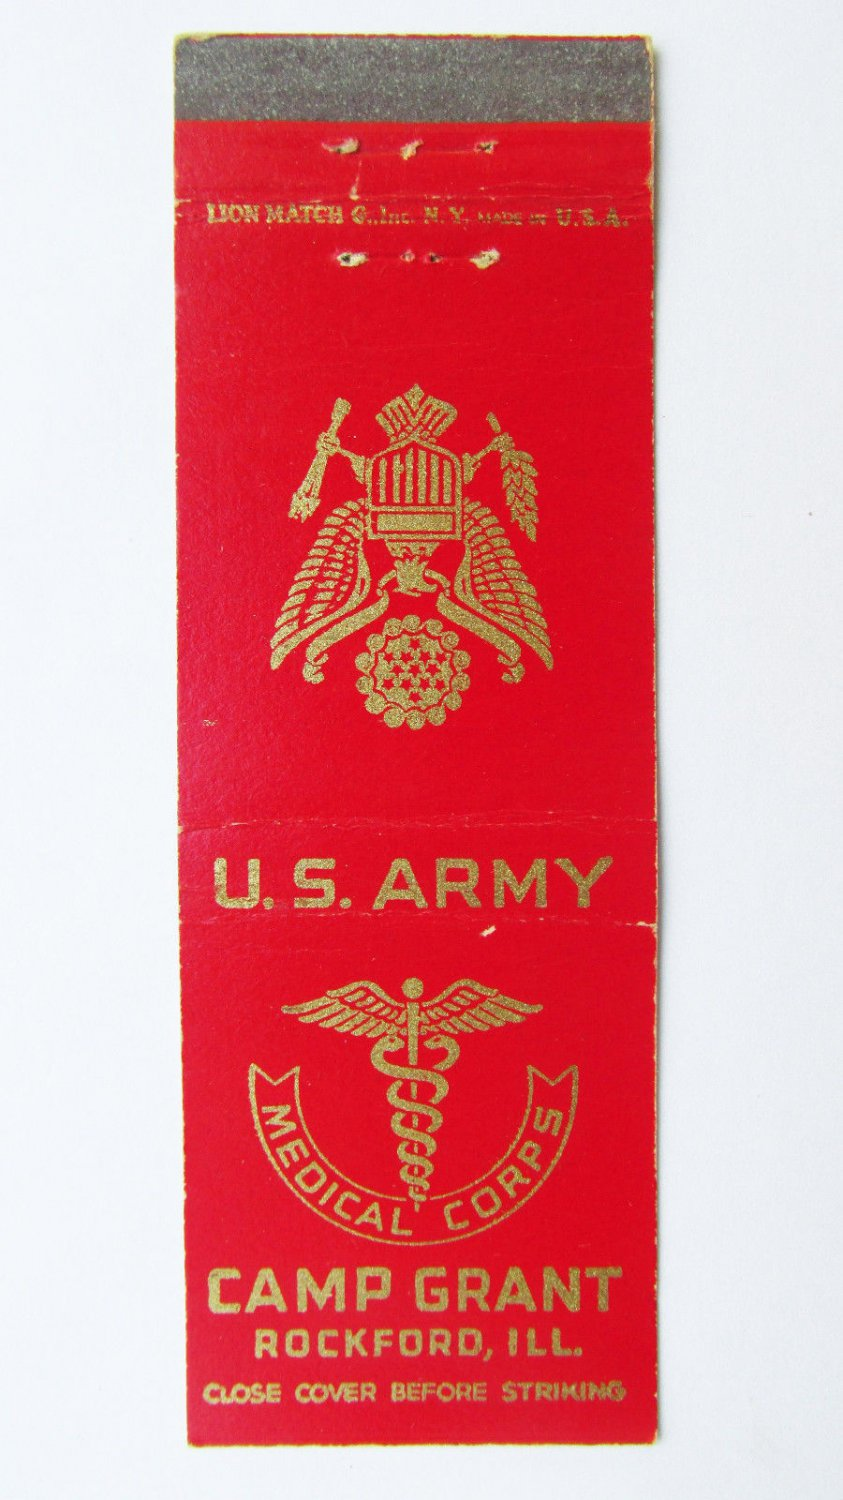 Pin on Military Matchbook Covers